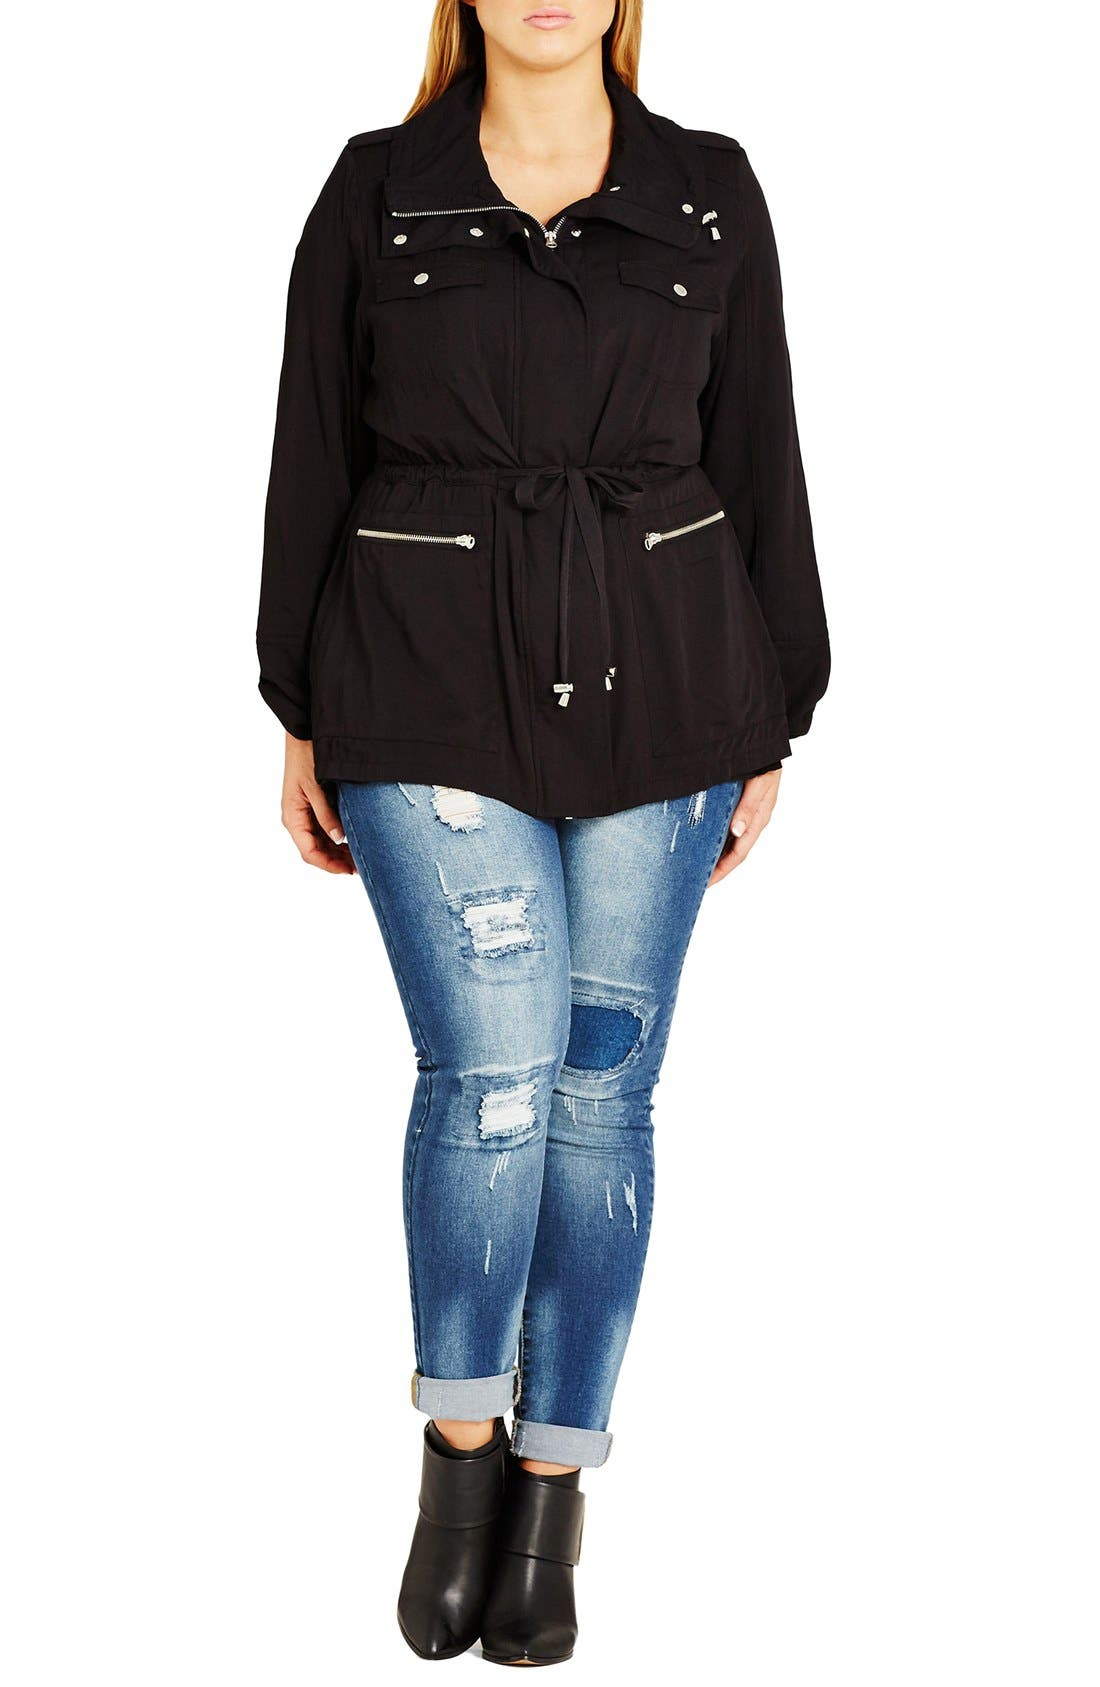 CITY CHIC Lightweight Drawstring Waist Utility Jacket